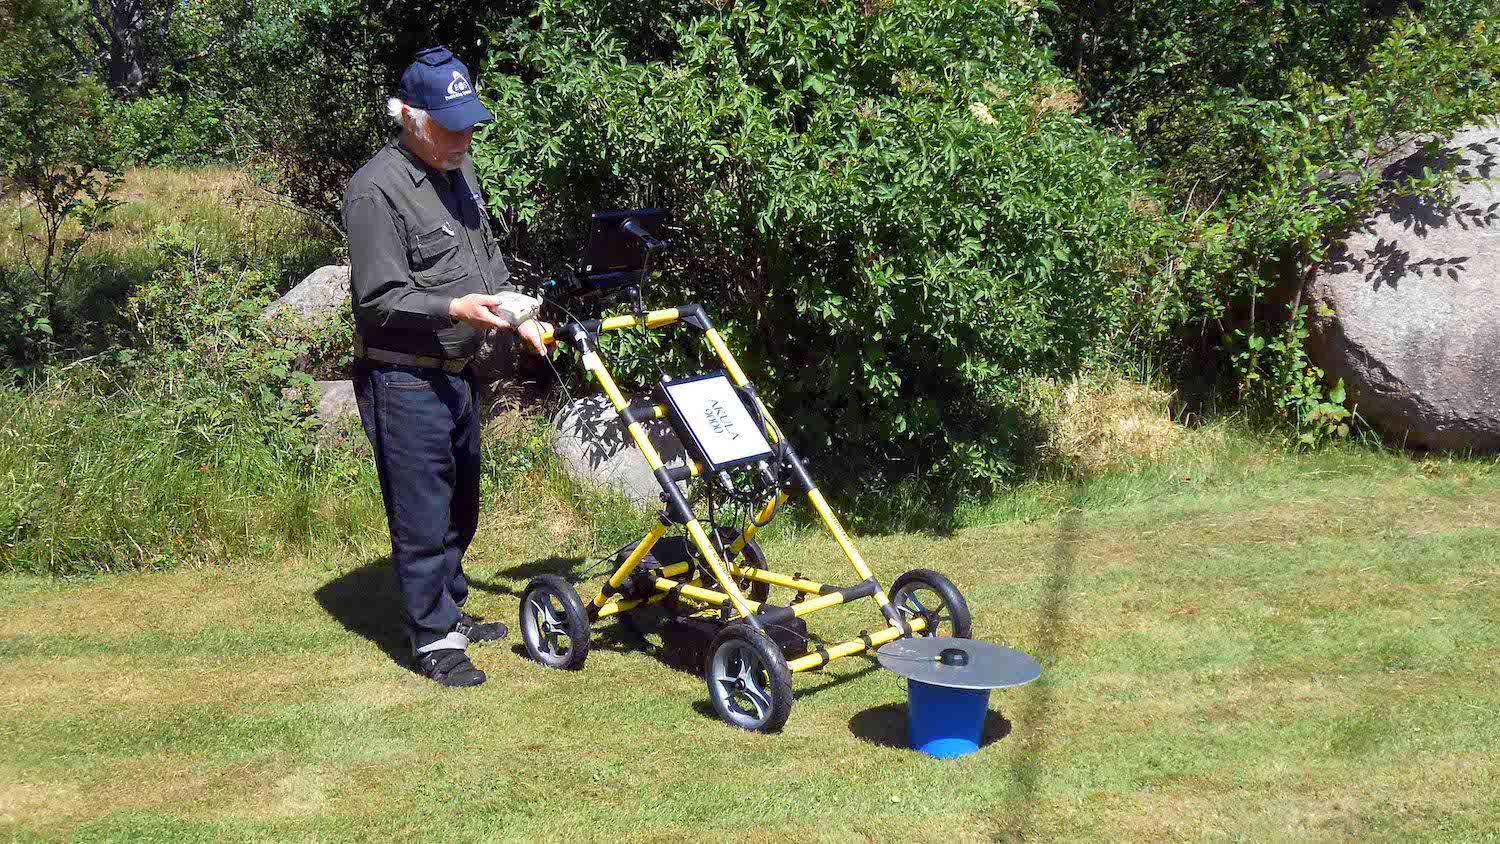 Swedish consultancy uses Arrow 100 GNSS receivers with GPR to find the positioning of buried, historic monasteries